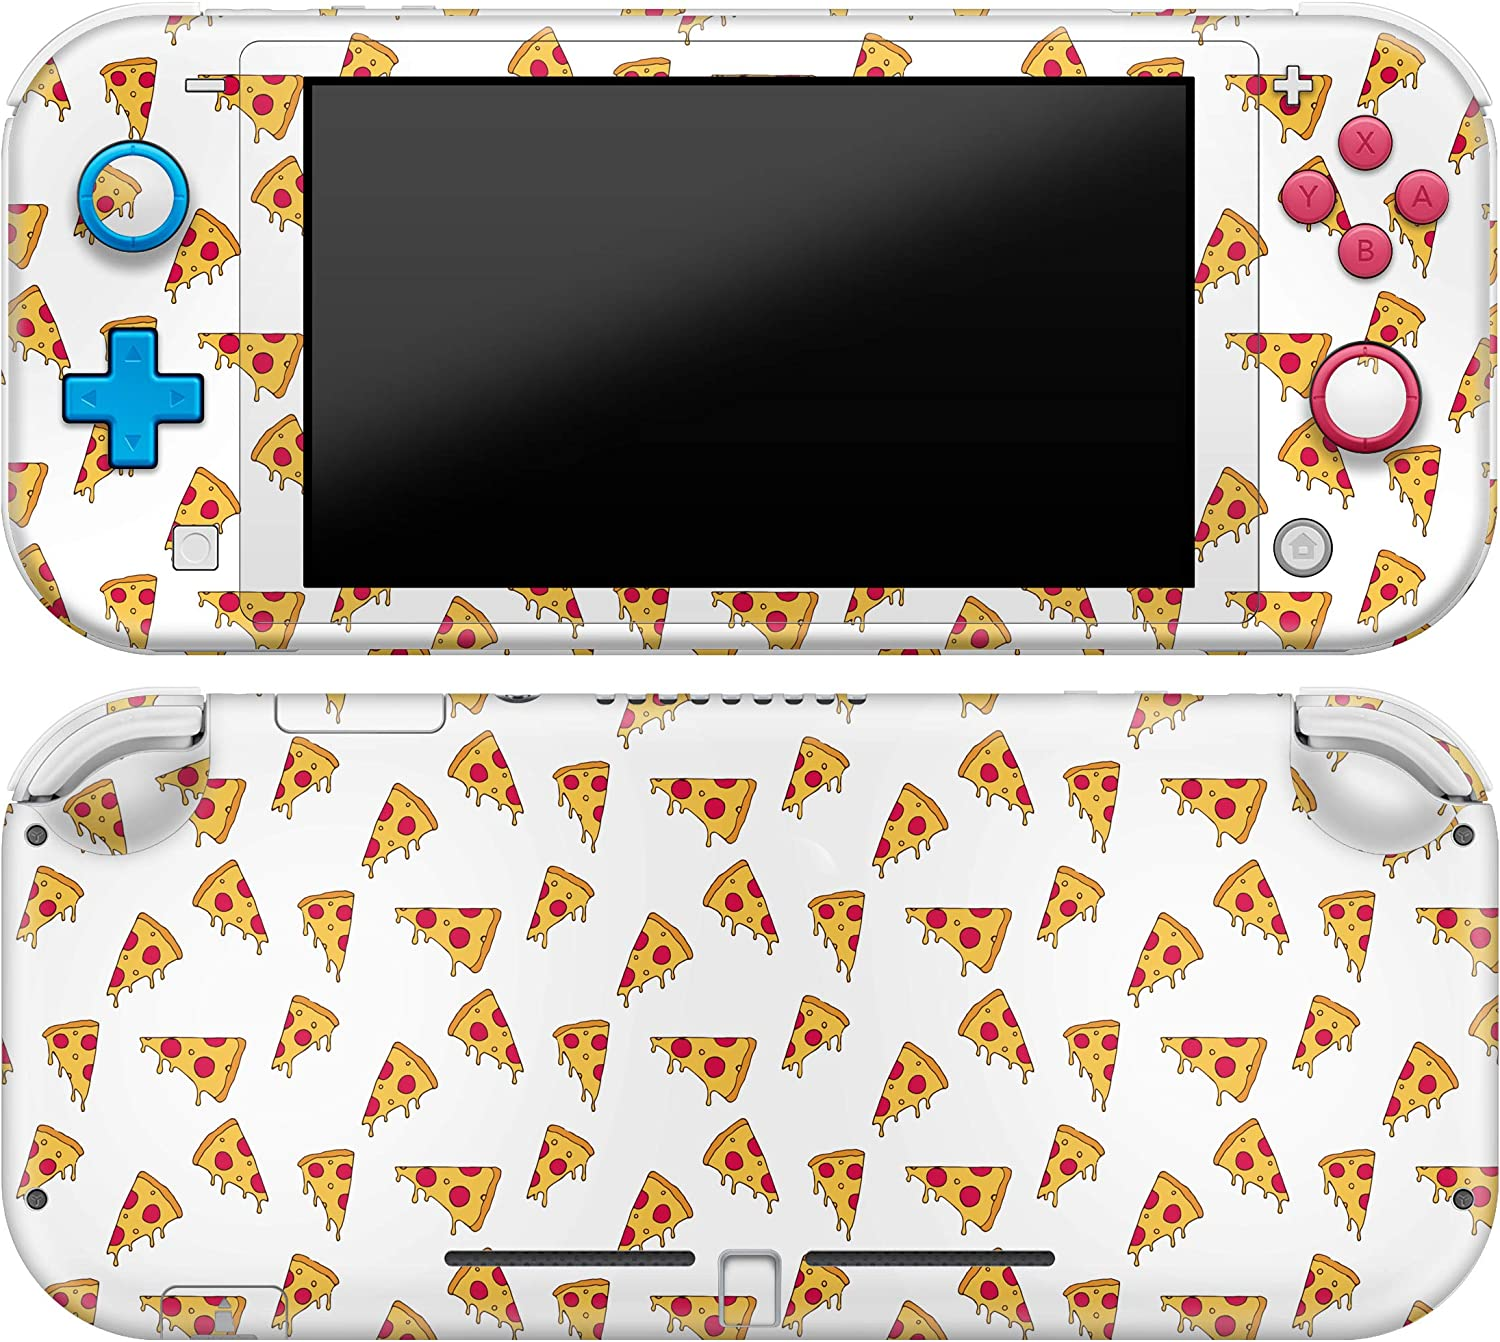 Cavka Vinyl Decal Skin Compatible with Console Switch Lite (2019) Stickers with Design Pizza Pattern Kitchen Cover Protector Wrap Italiano Print Food Protection Tasty Full Set Durable Hot Faceplate